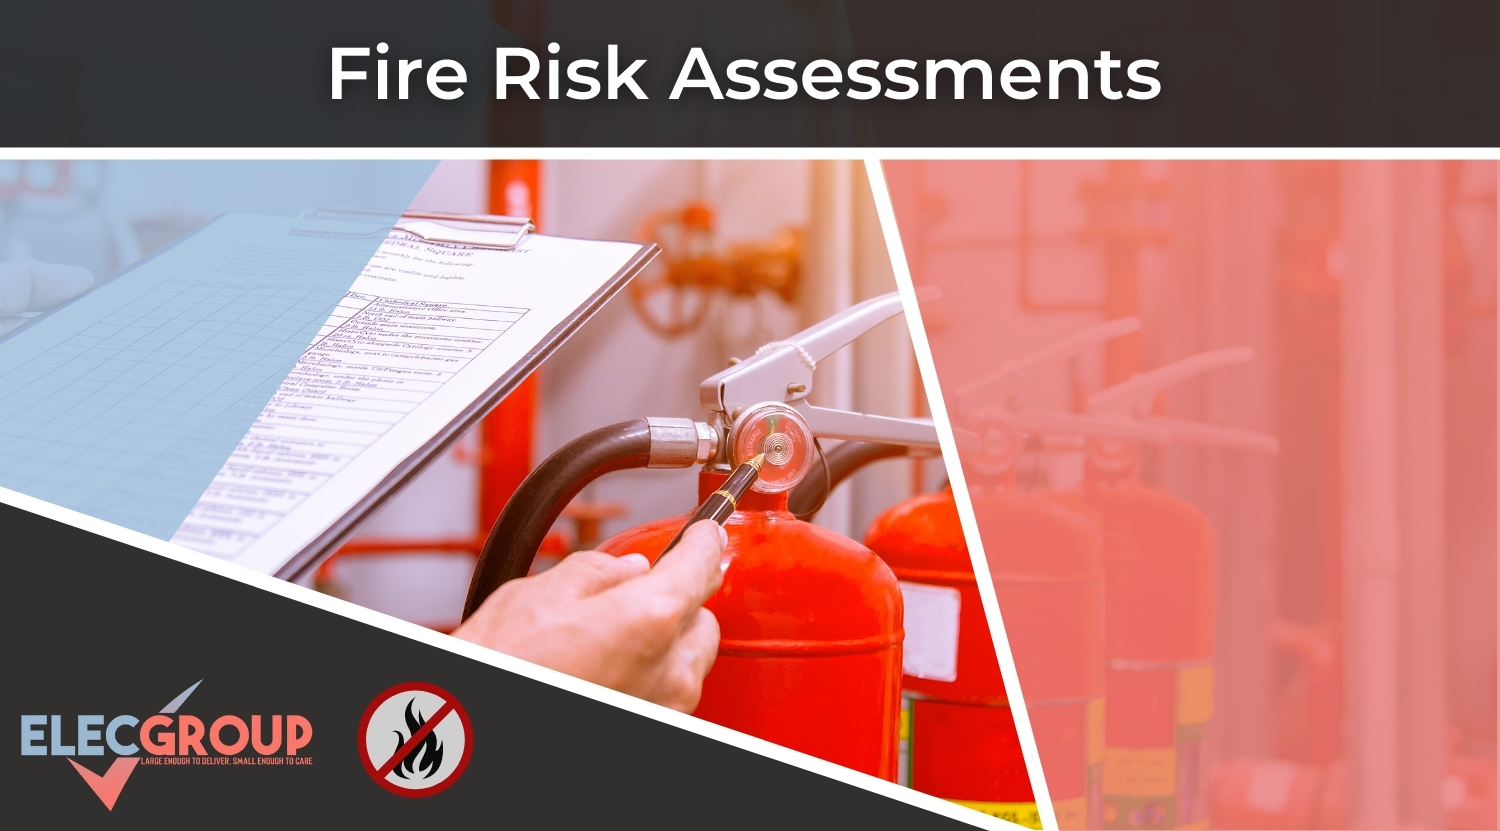 Manager performing a fire risk assessment